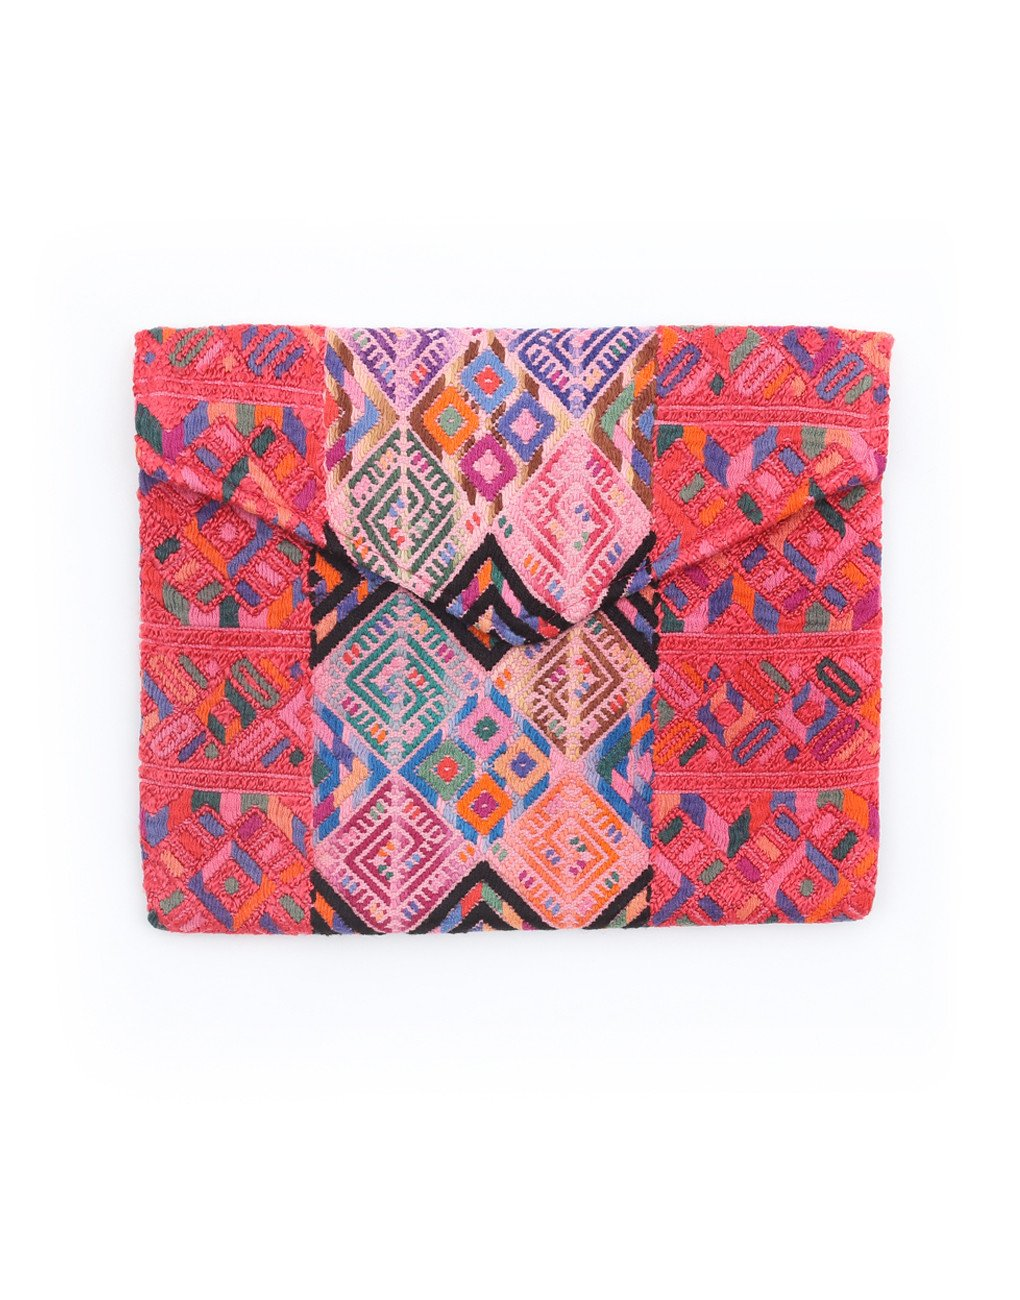 Fair Trade, Artisan Made Pink Pattern Envelope Clutch